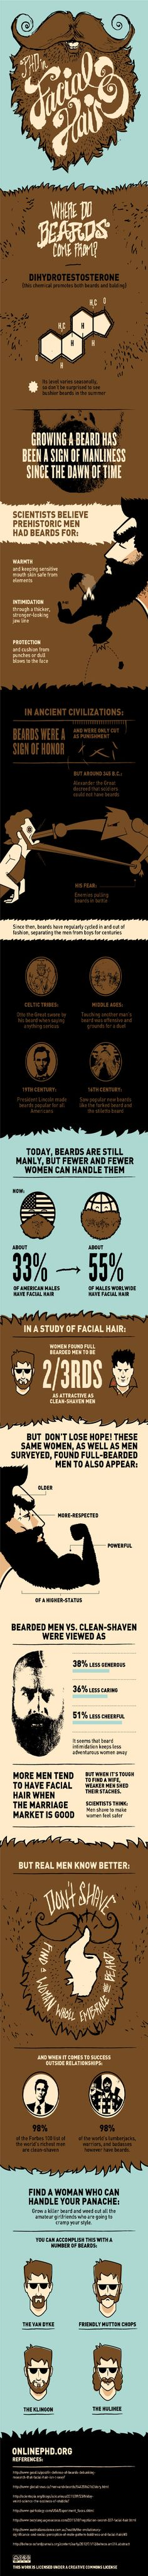 Beard or Clean-shaven? Sexy or not? Safe? Or Badass? For dangergirls or the more demure woman of style? The answers in a follicularly-focused infographic